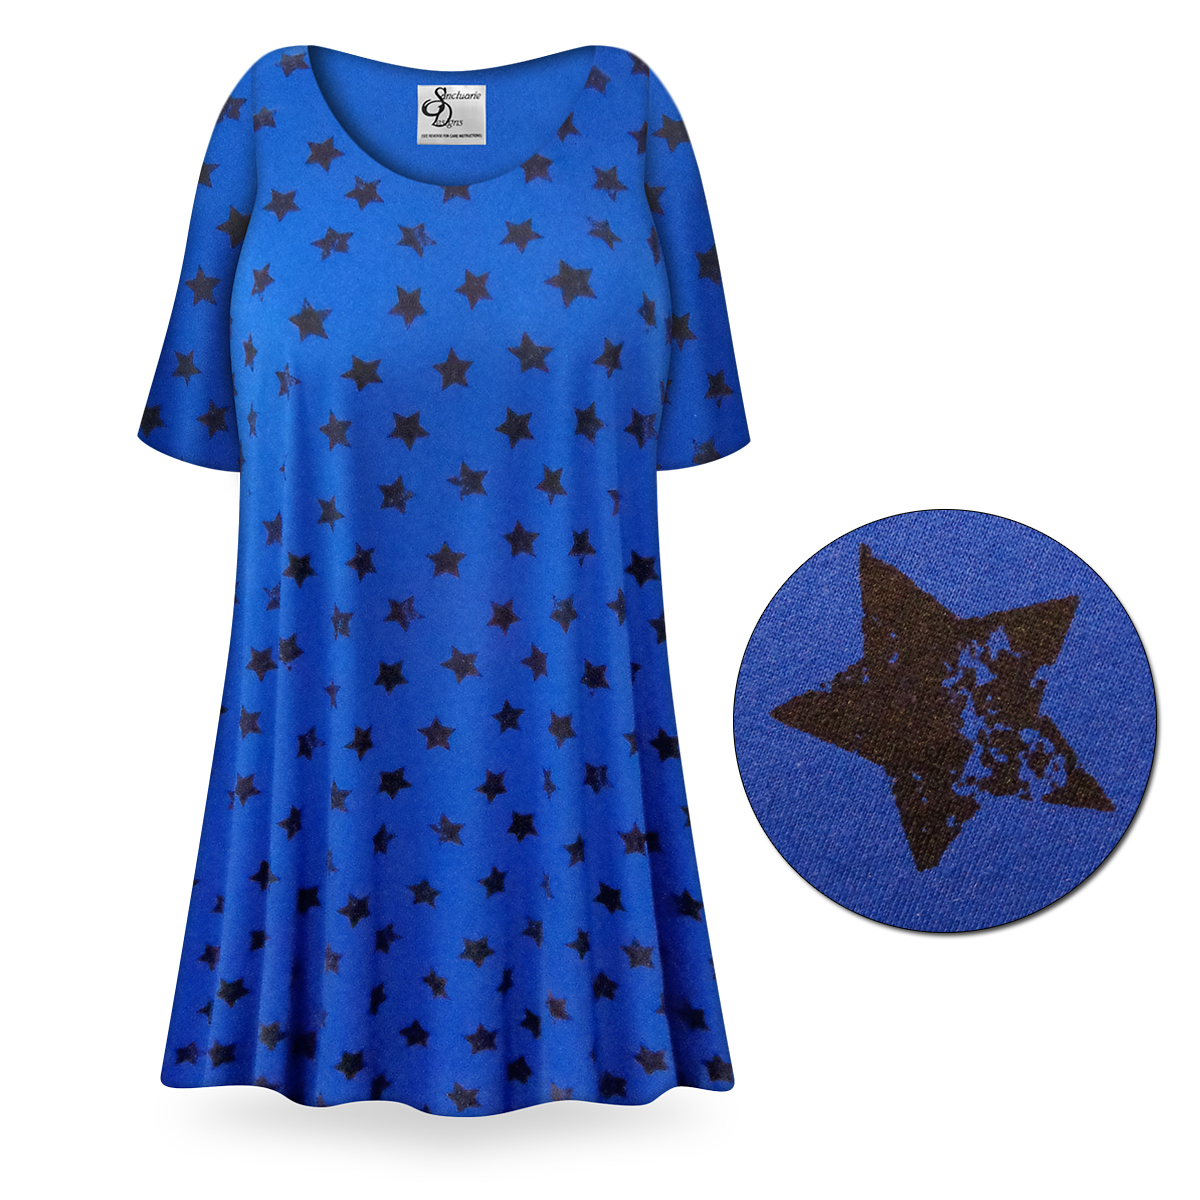 Sold Out New Customizable Super Star Print Plus Size